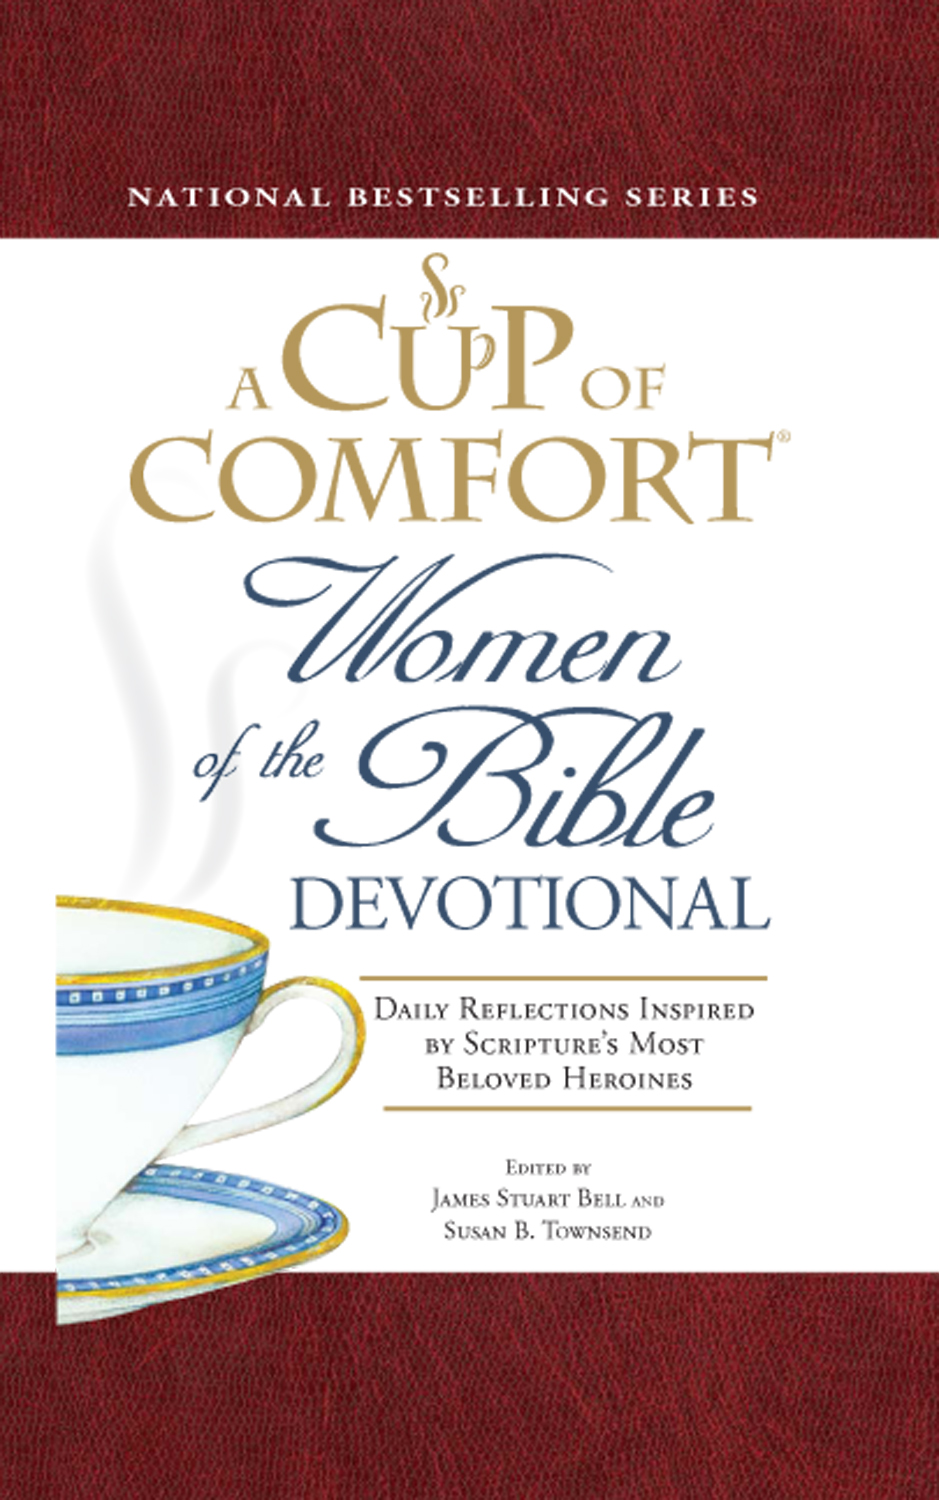 A Cup of Comfort Women of the Bible Devotional: Daily Reflections Inspired by Scripture's Most Beloved Heroines By: James Stuart Bell,Susan B Townsend